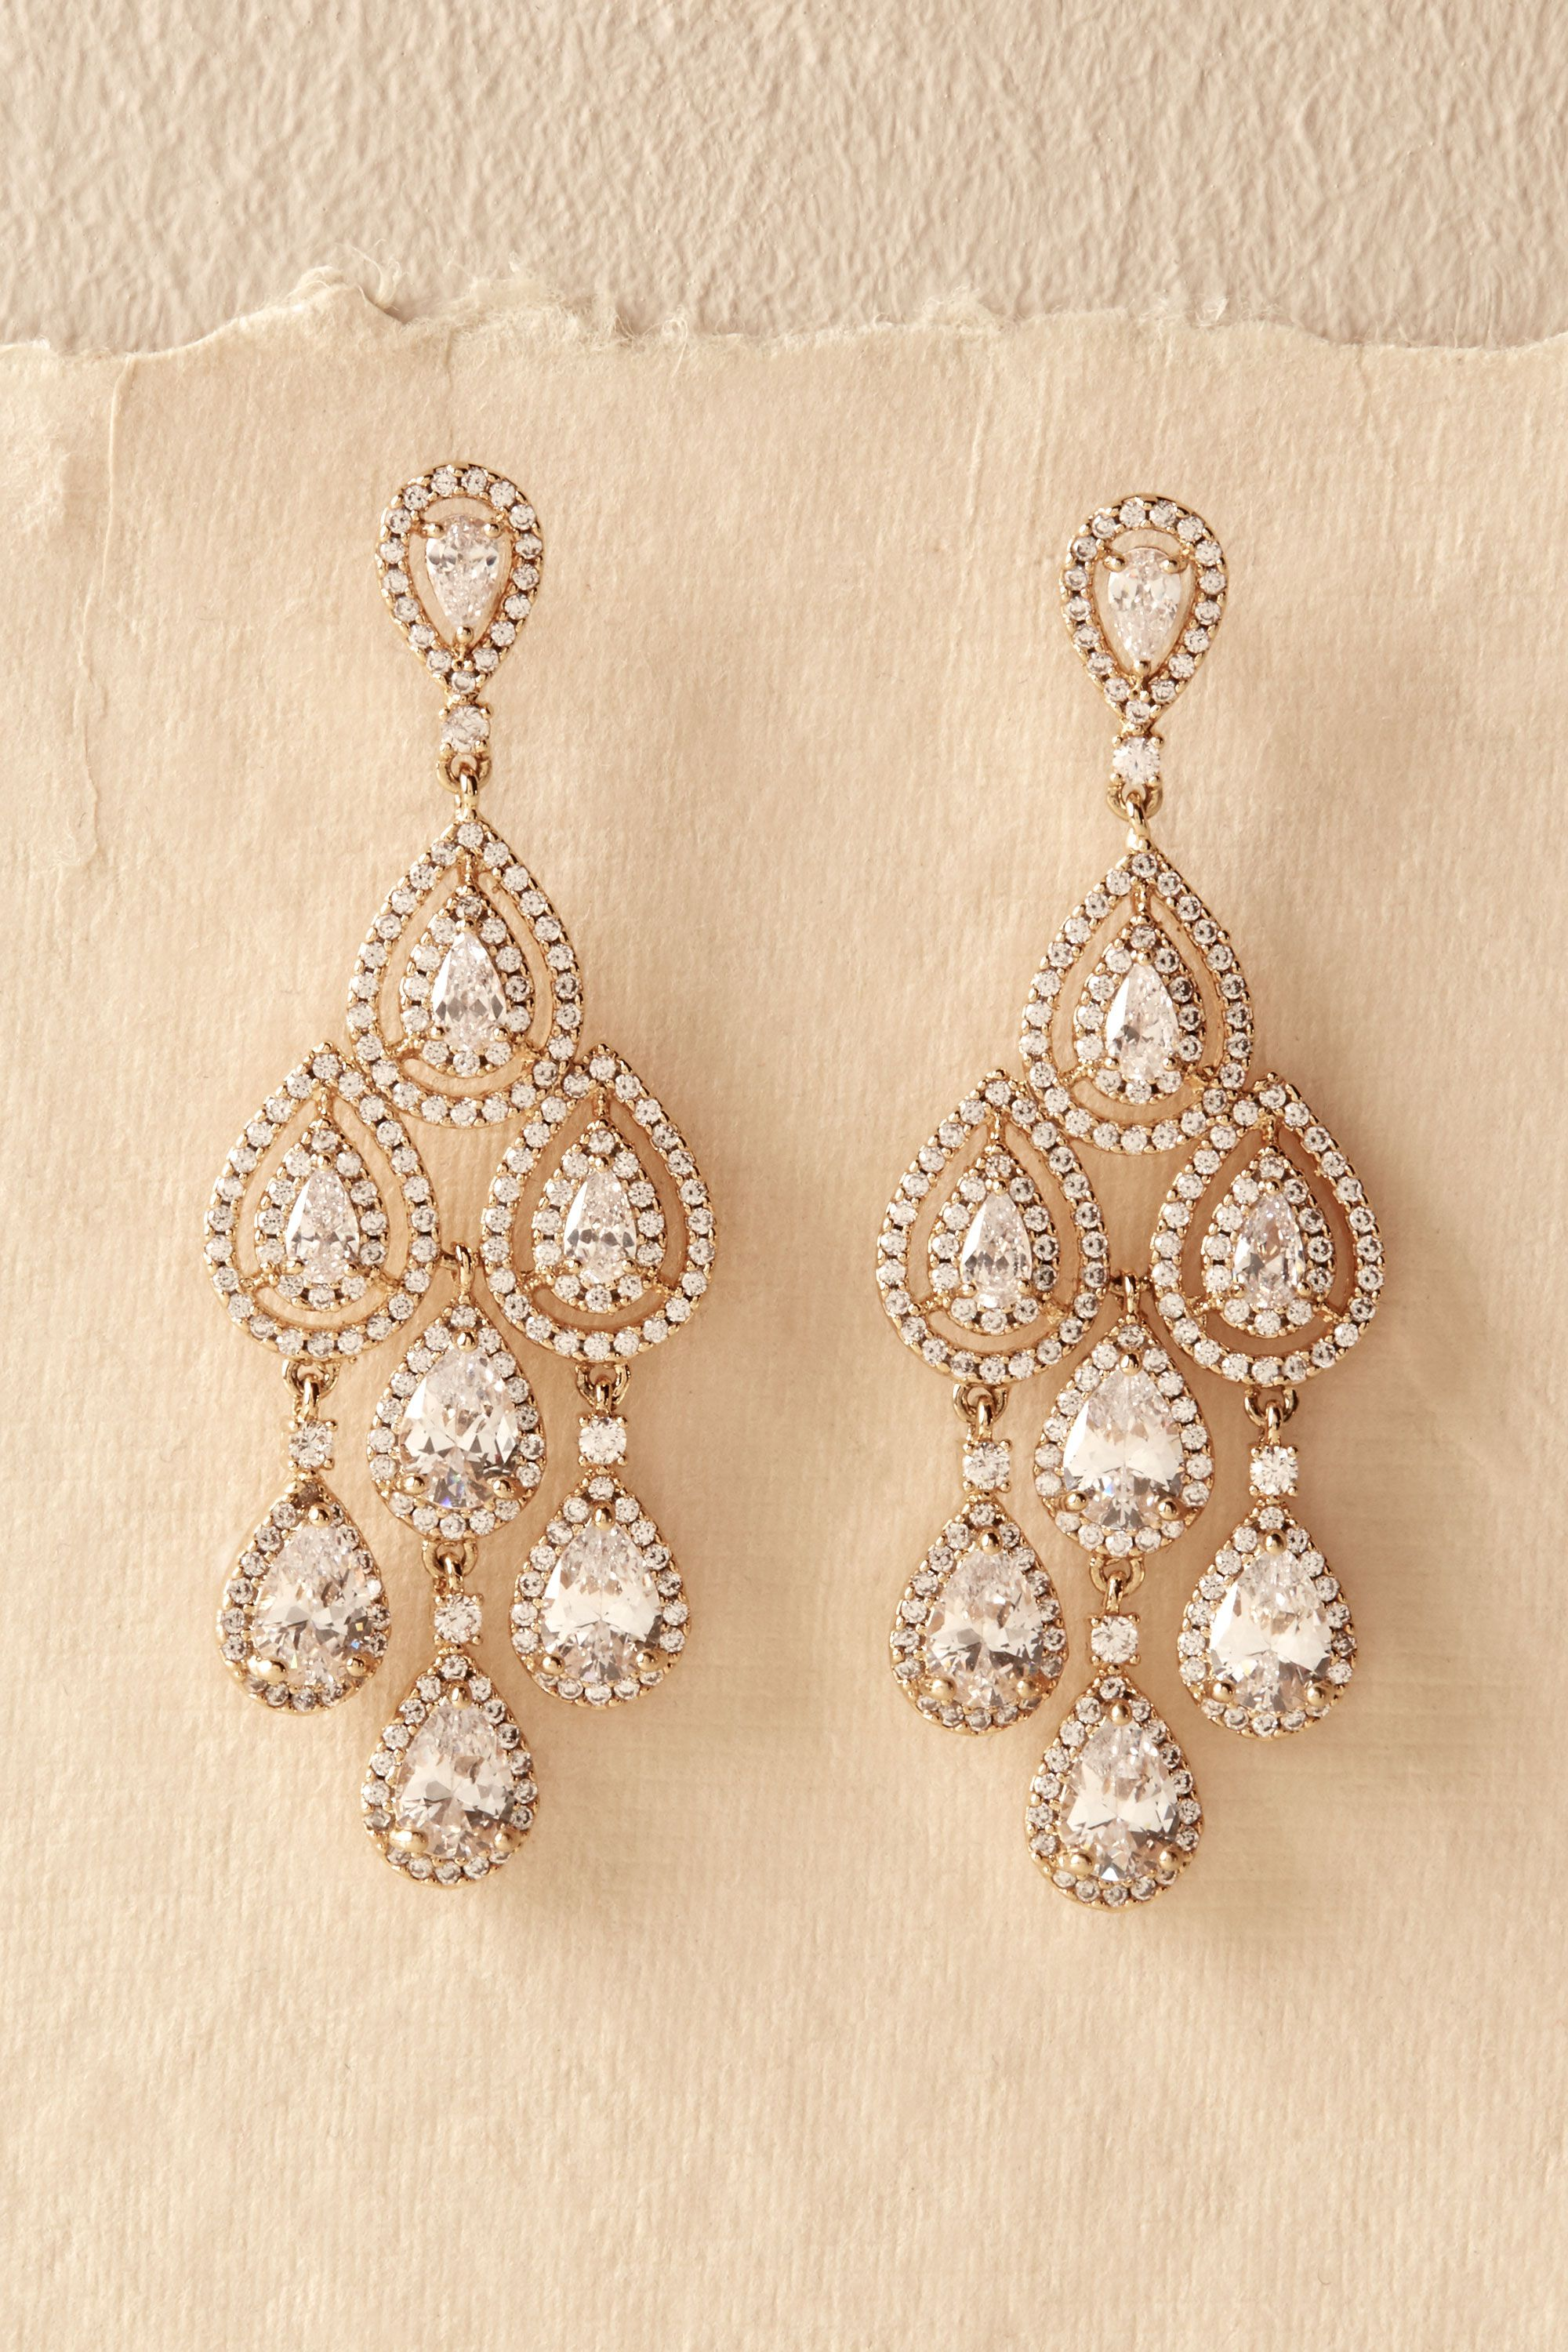 shop the bride bridal jewelry wedding jewelry Aniston Chandeliers